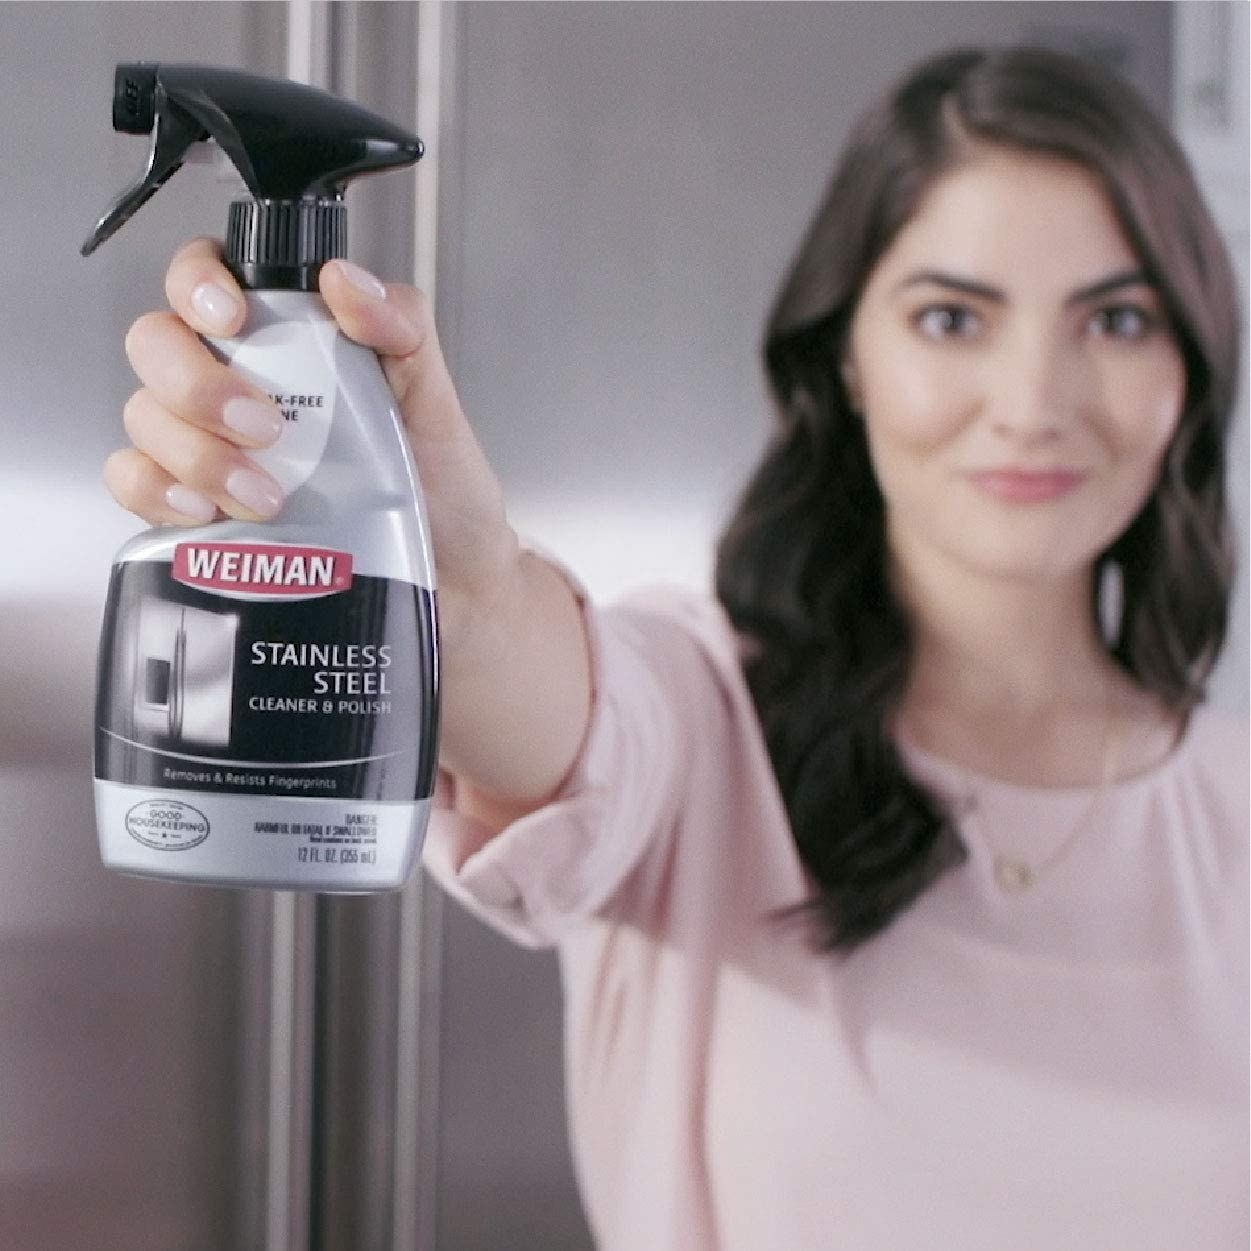 A person holds a bottle of the cleaning product in front of them